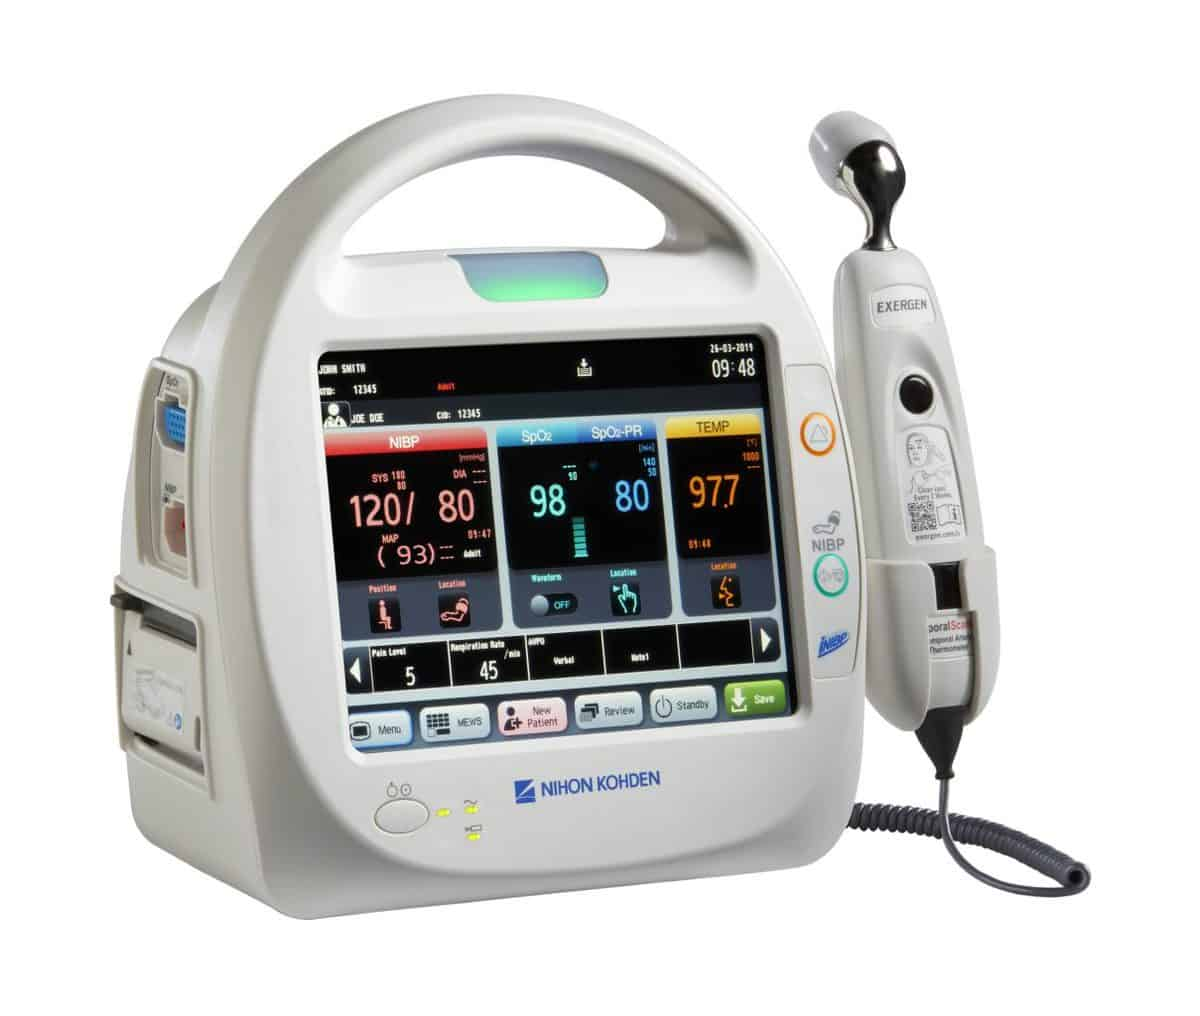 Nihon Kohden's New Patient Monitor for Outpatient Clinics